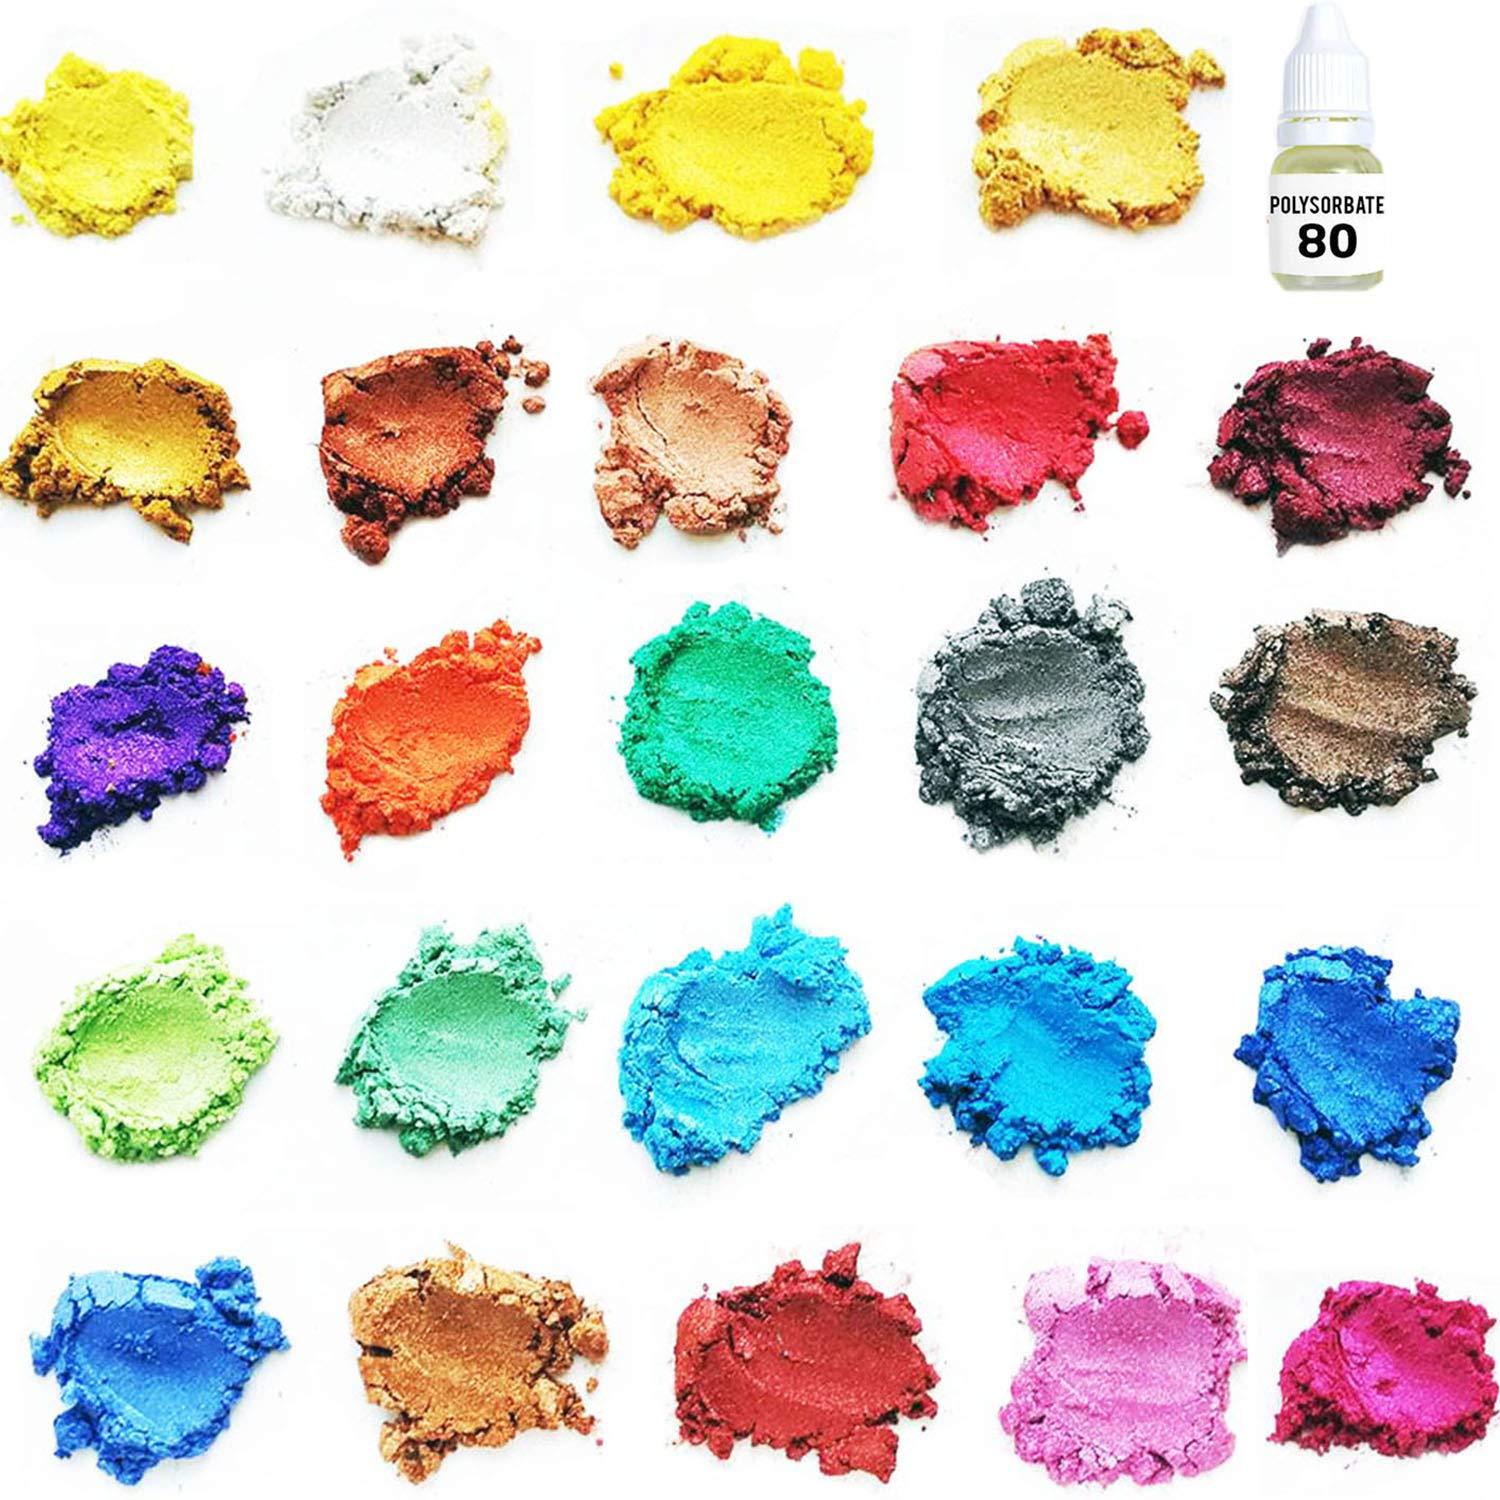 ORAK Premium [24 Assorted Colors] Cosmetic Grade Natural Mica Powder Pigment Set for Bath Bomb, Soap, Epoxy, Resin, and Slime Making - Non Toxic Pearl Color Dyes for Makeup and Nail Art